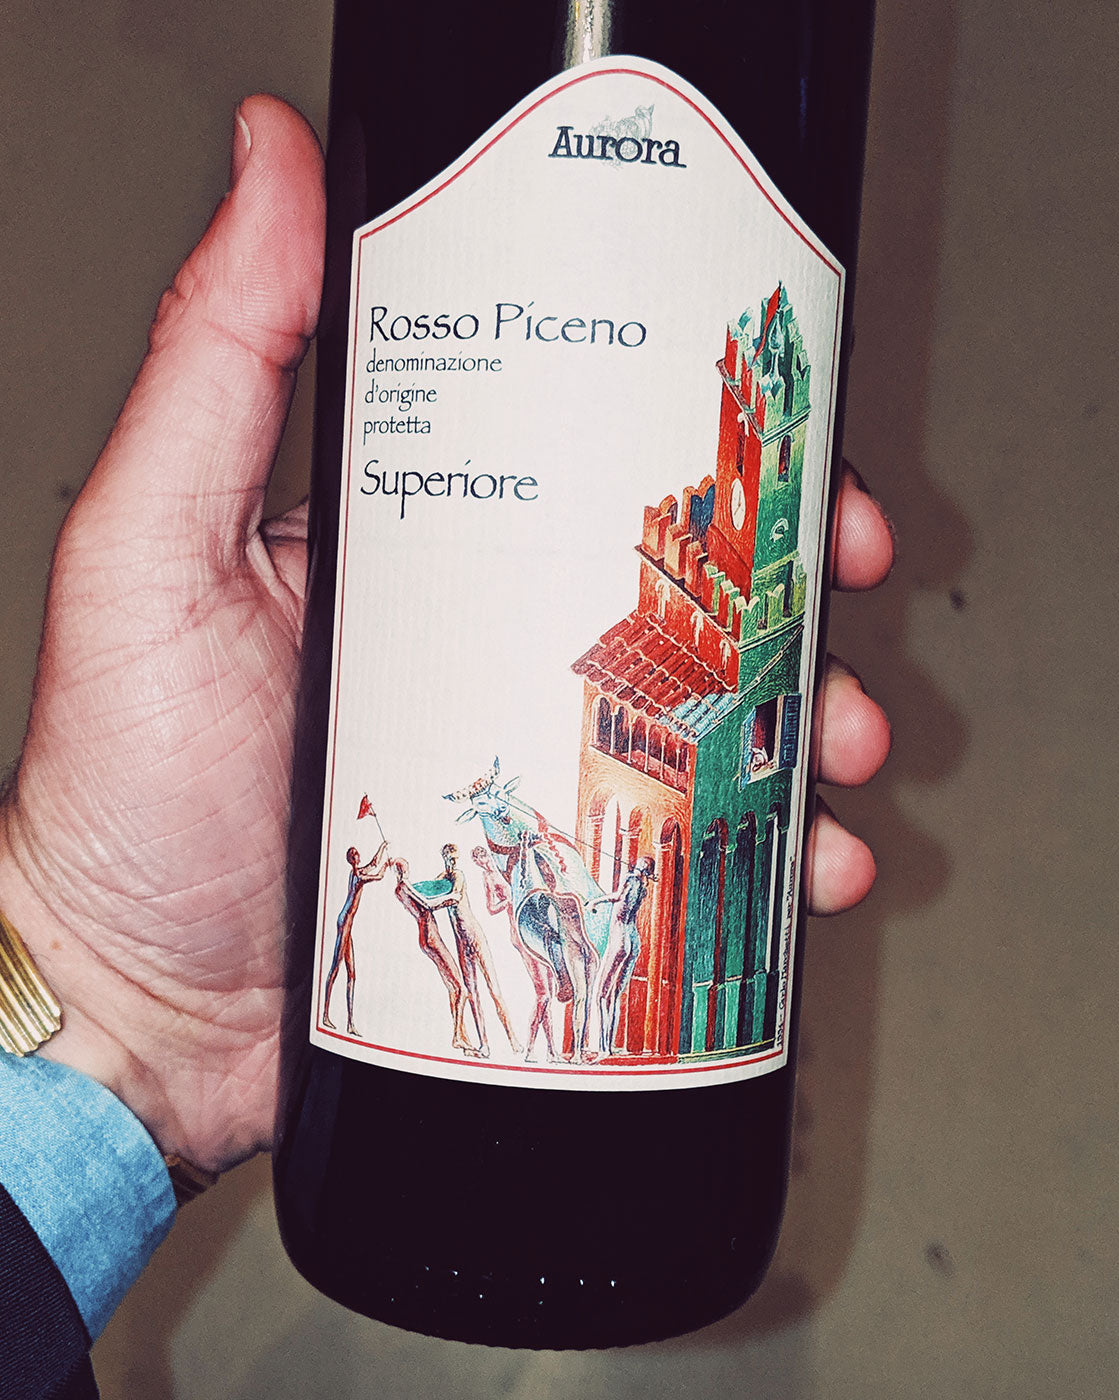 P Johnson Wine review: Aurora Rosso Piceno DOP Superiore 2016